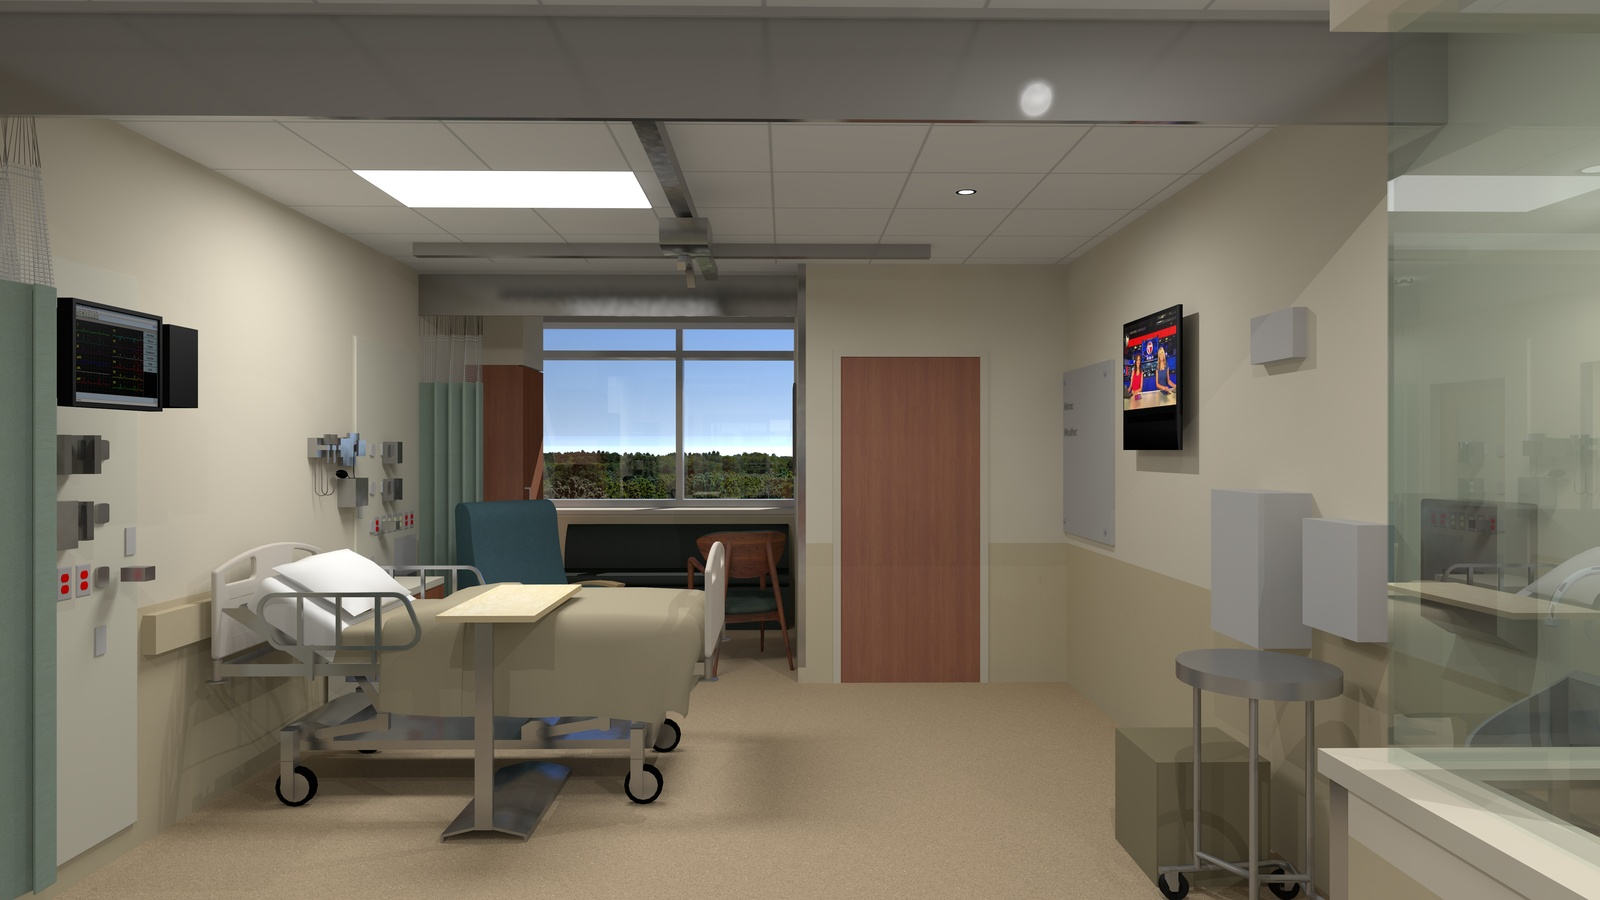 South Shore MA   South Shore Hospital Expansion And Renovation. Still From  Animation   ICU Patient Room. Location: South Shore, MA Project Designer:  ...